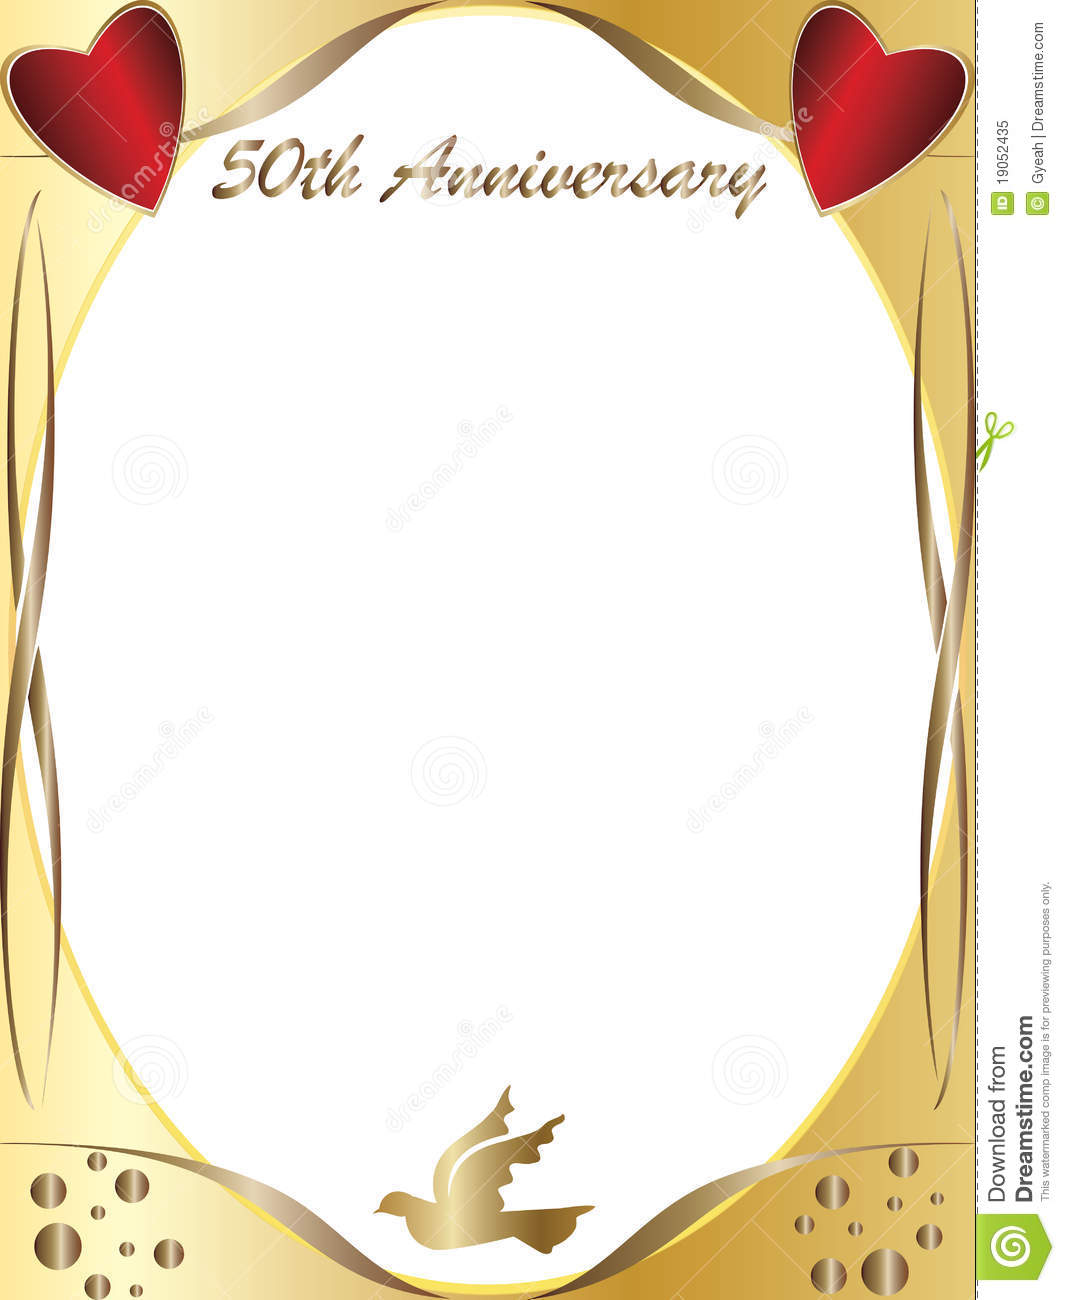 50th Wedding Anniversary Royalty Free Stock Photo   Image  19052435